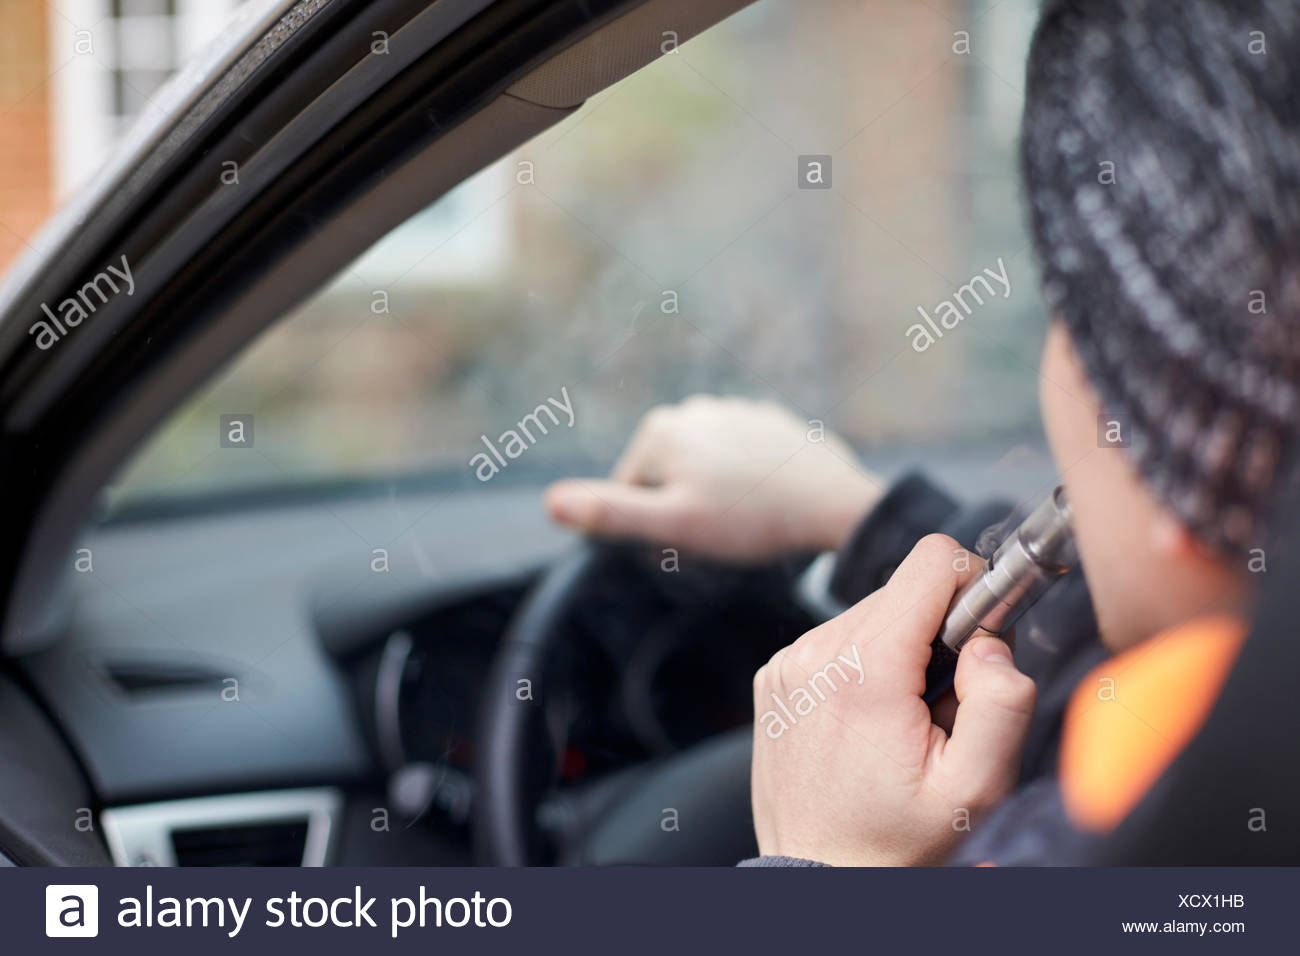 Close Up Of Young Man Sitting In Car Using Vapourizer - Stock Image